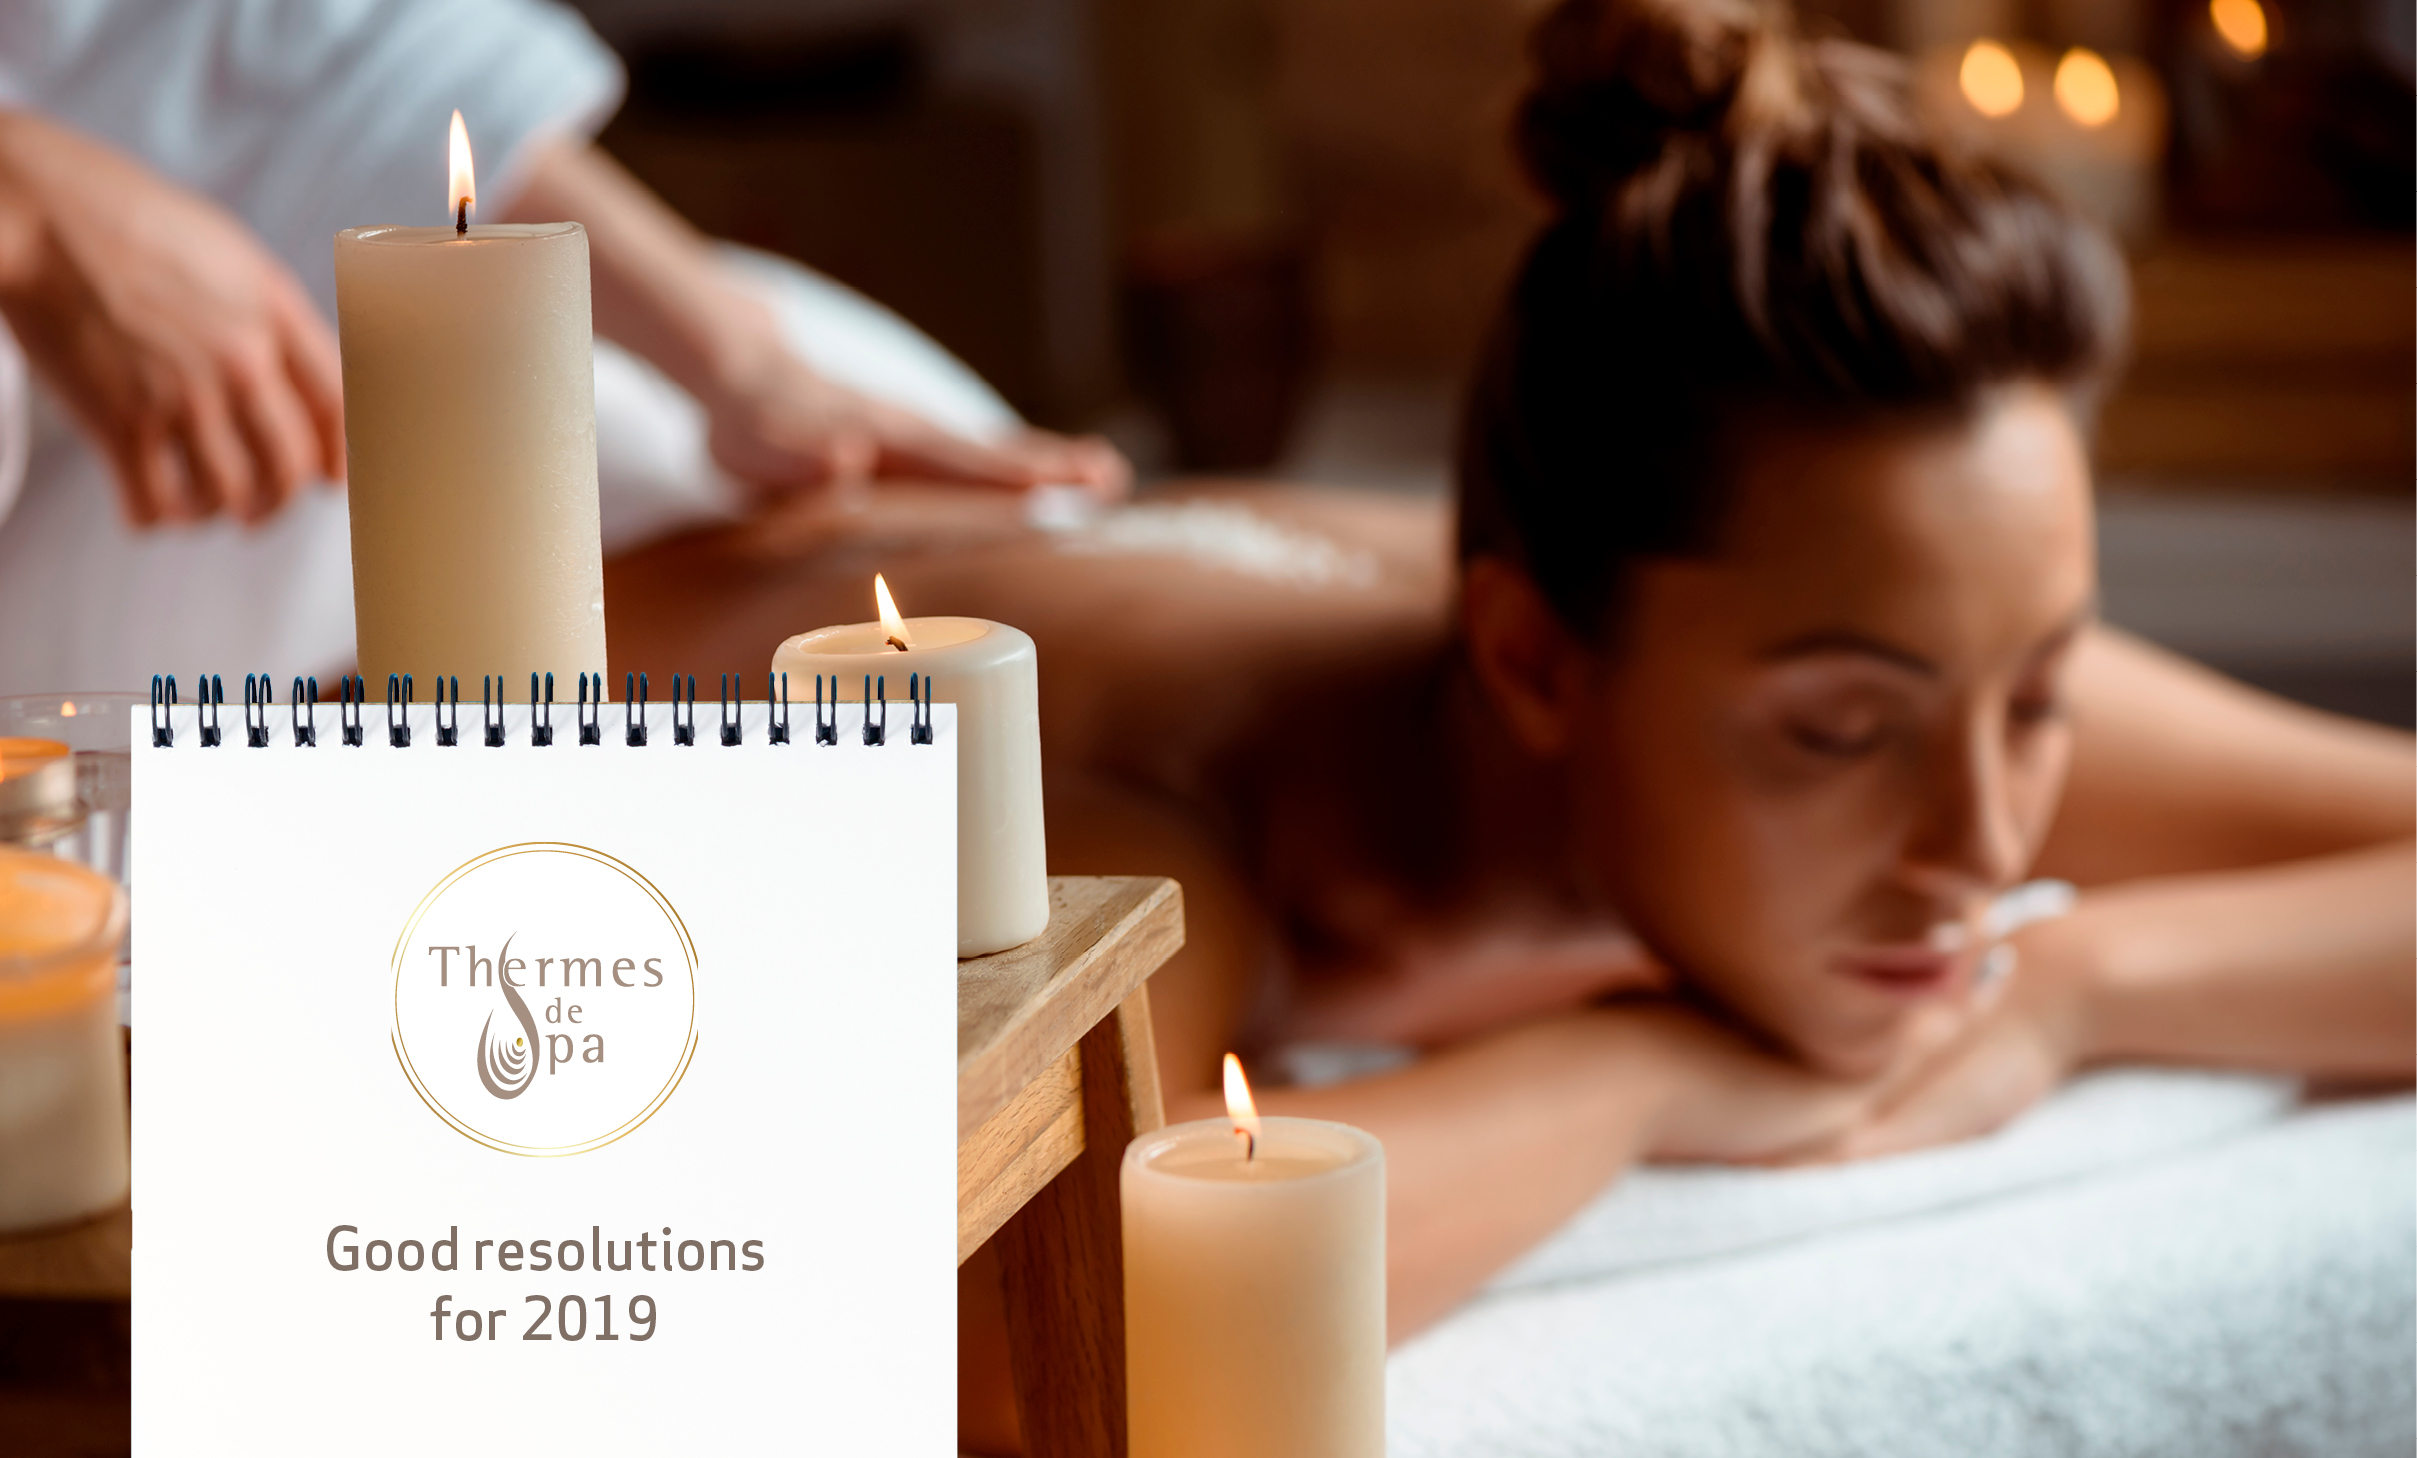 Wellness tips to get you started in 2019 by thermes de Spa!